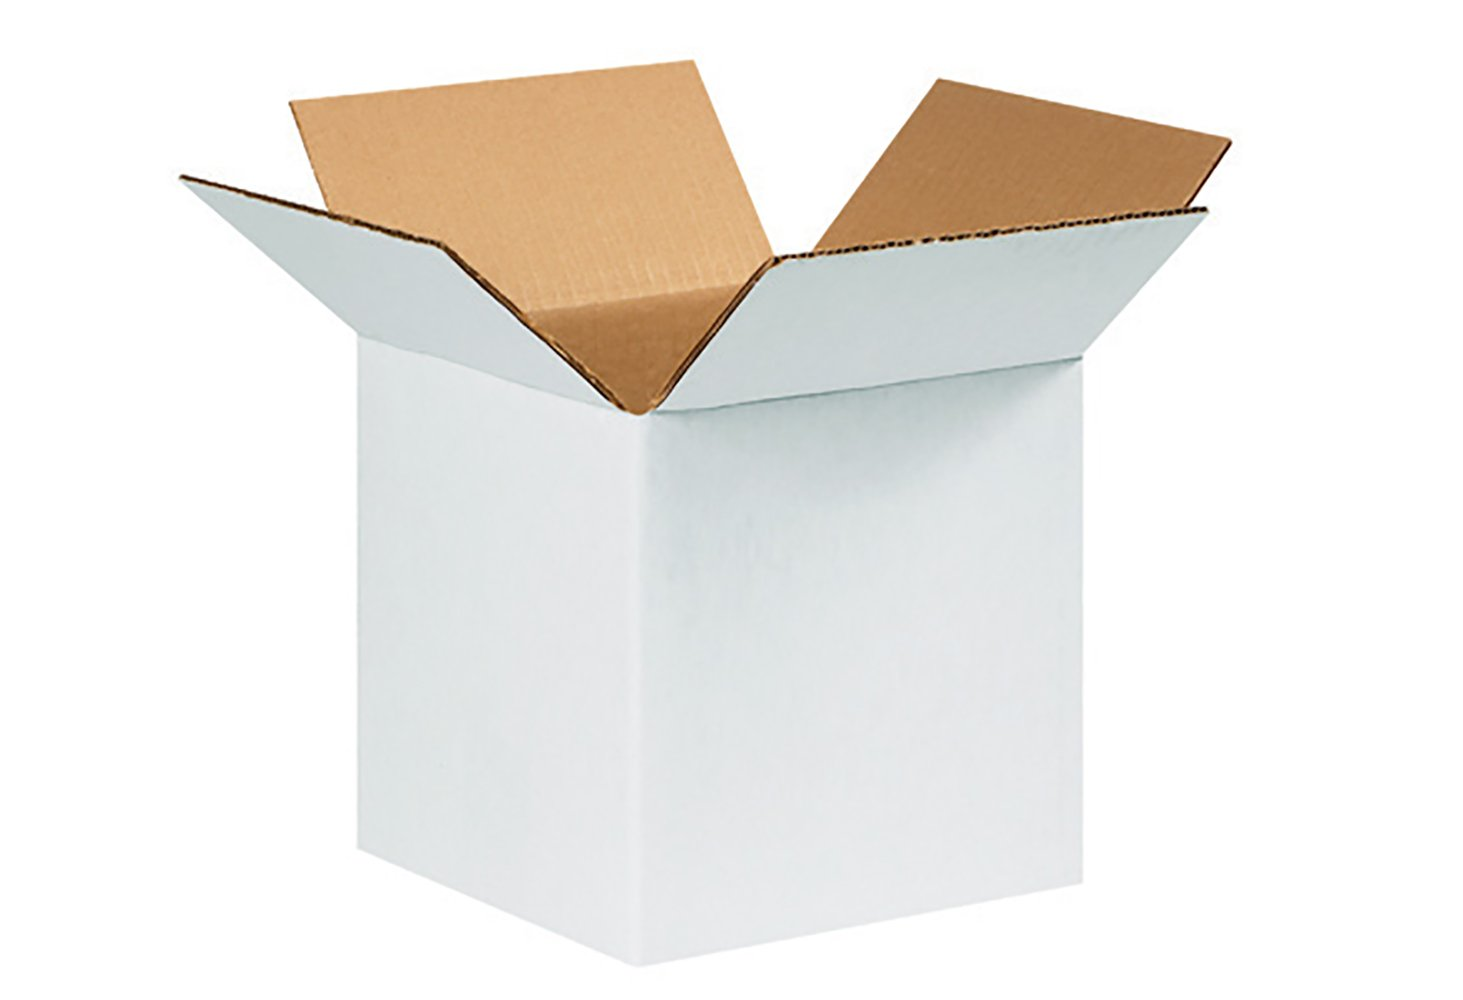 RetailSource B090909WB600 White Corrugated Box, 9'' Height, 9'' Width, 9'' Length, Brown (Pack of 600)